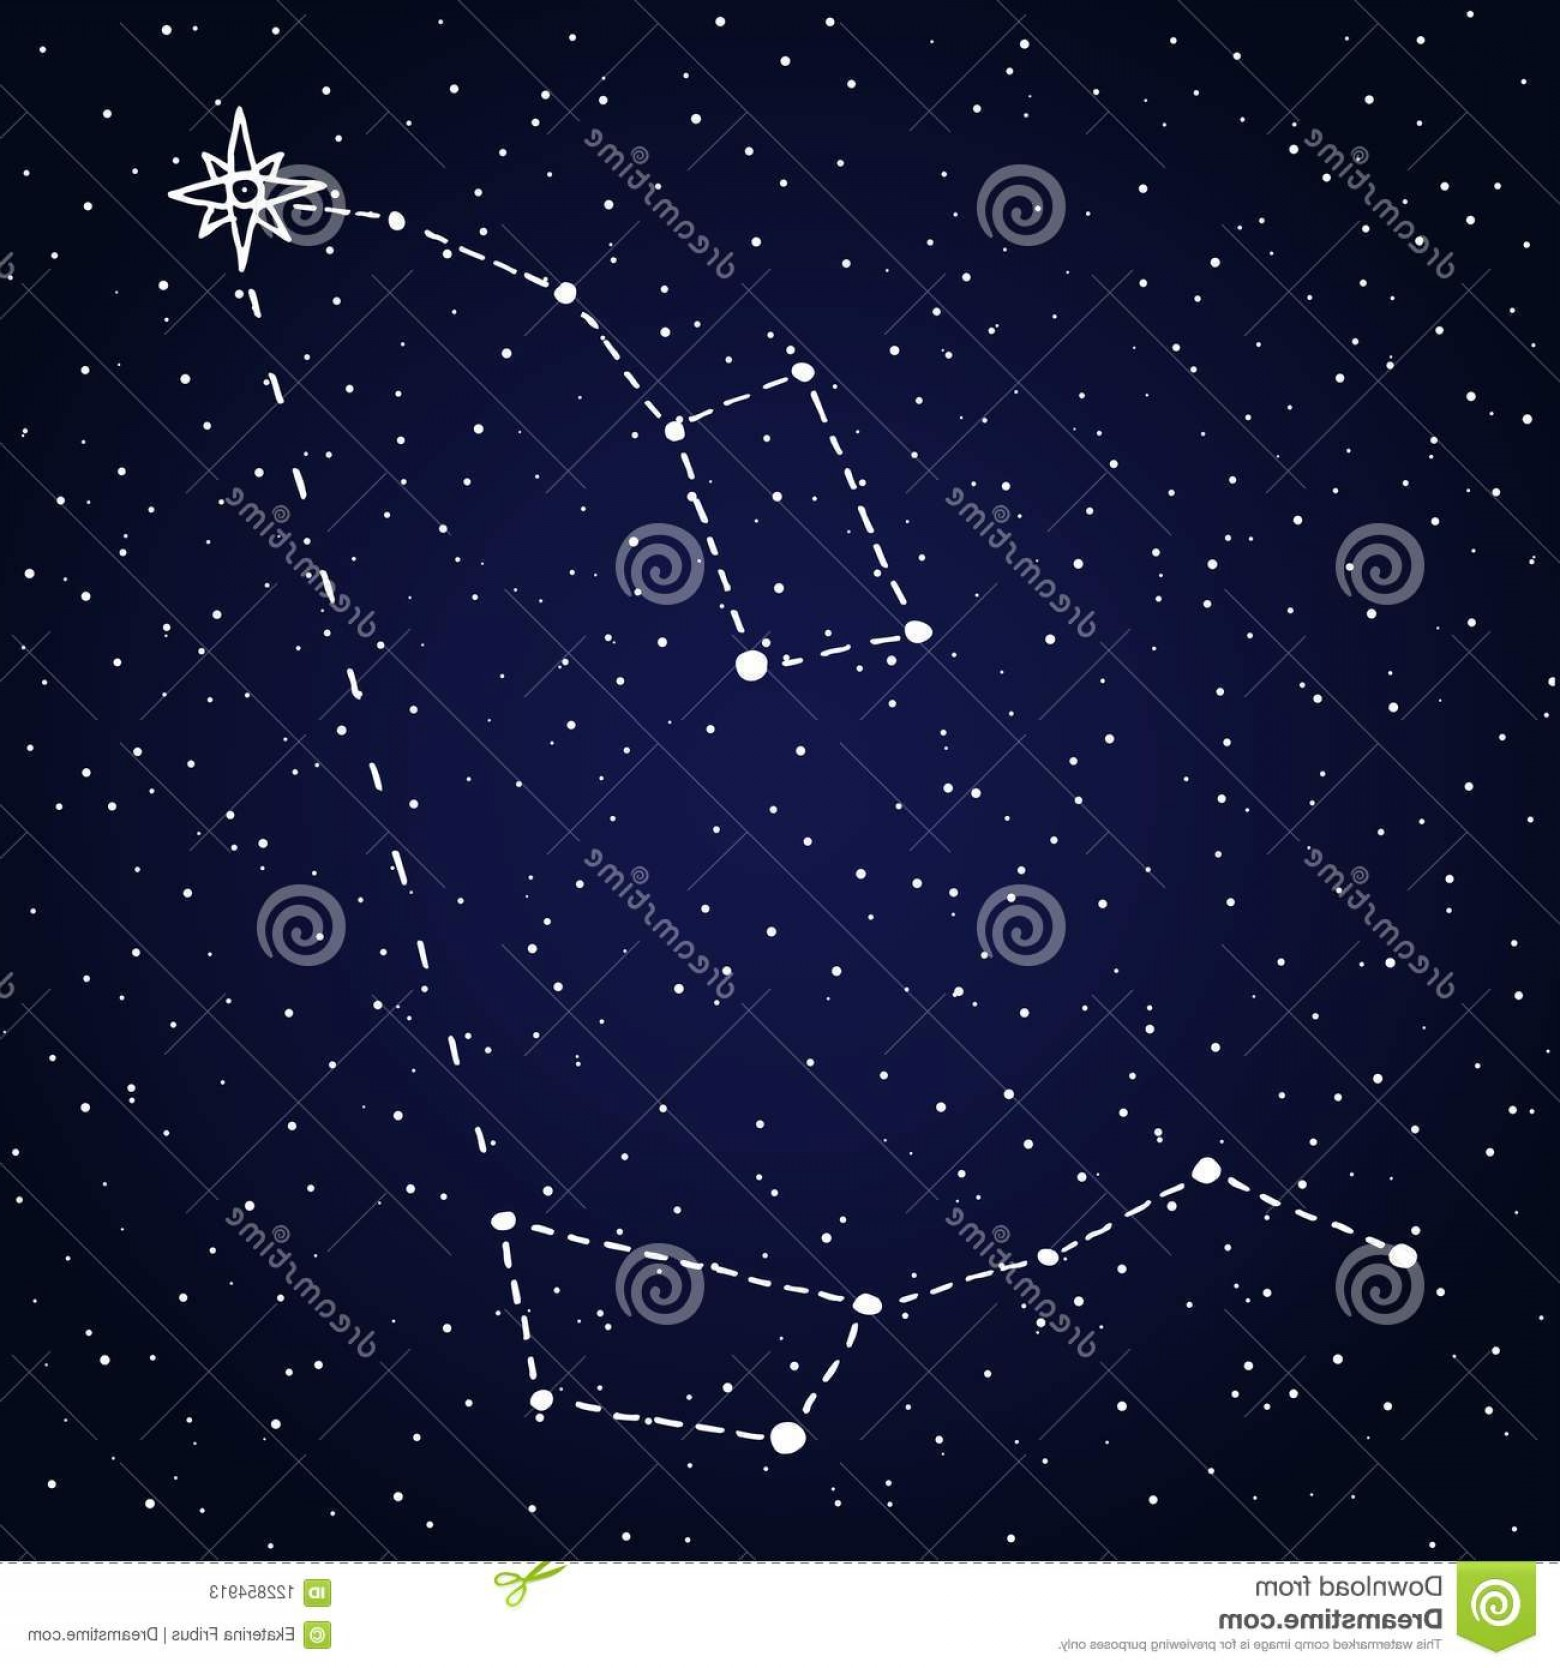 Polaris Star Logo Vector: Finding North Star Polaris Starry Night Sky Ursa Major Minor Constellations Little Dipper Big Space Astronomical Design Image